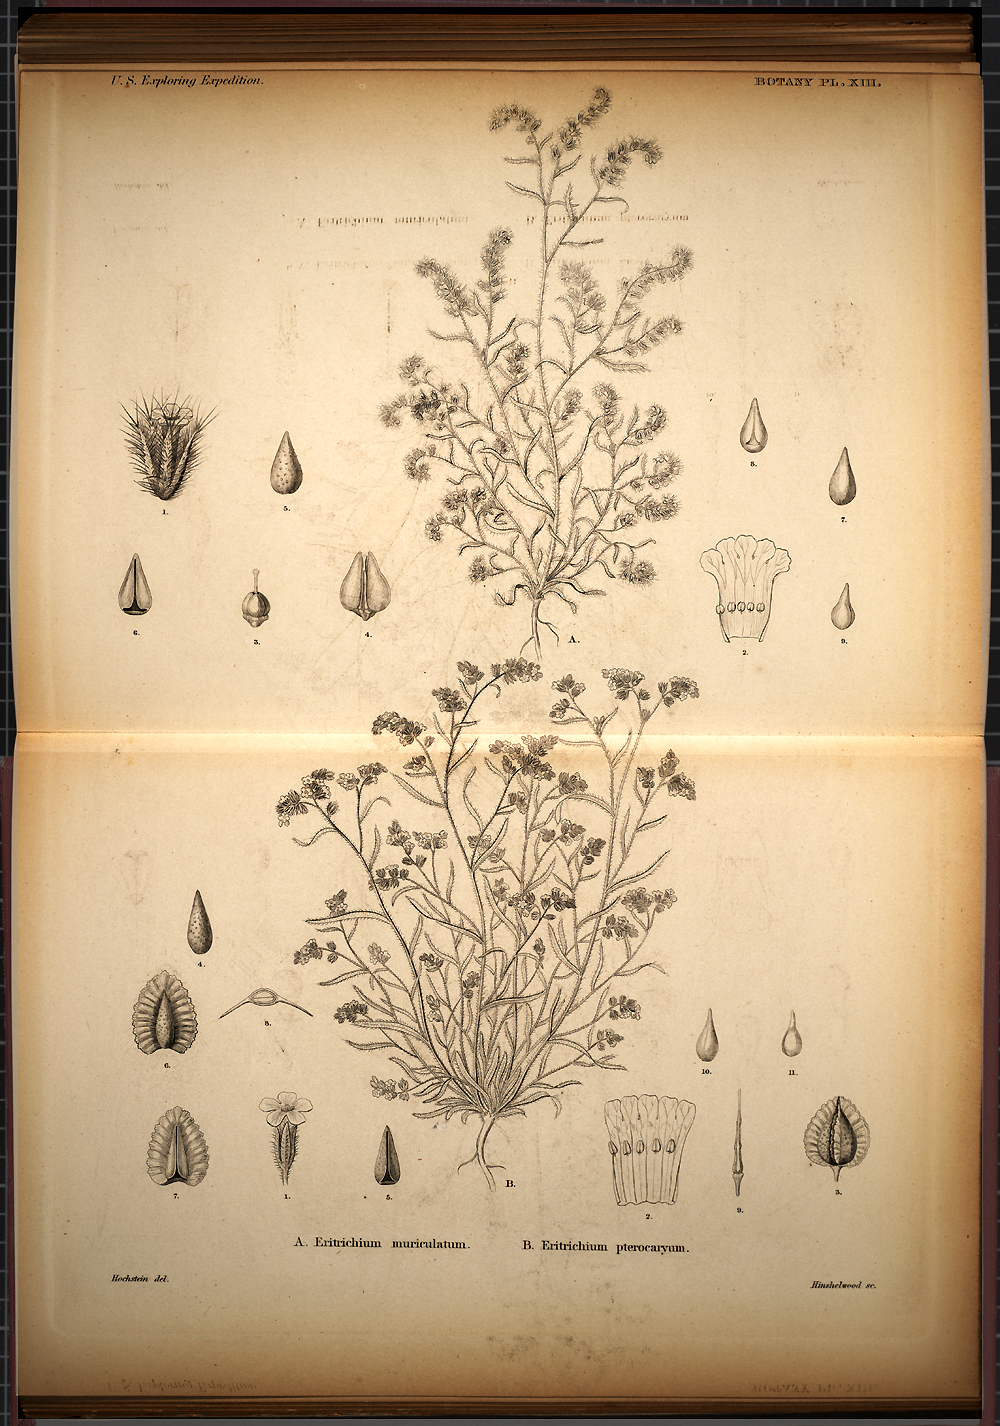 Botany, Plate XIII,  Image number:SIL19-28-049